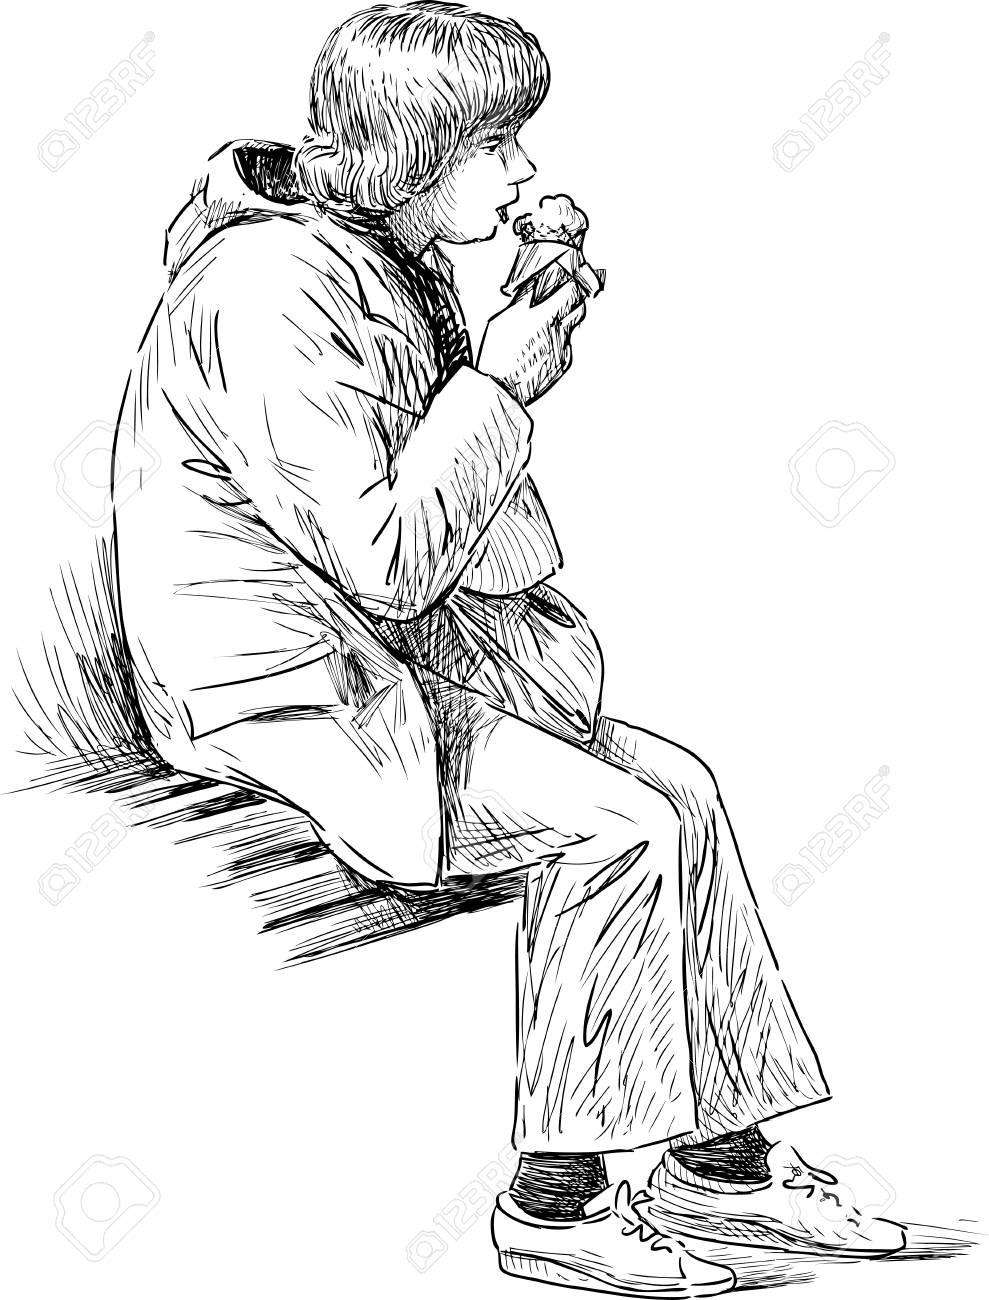 989x1300 A Woman Eating An Ice Cream On A Park Bench Royalty Free Cliparts